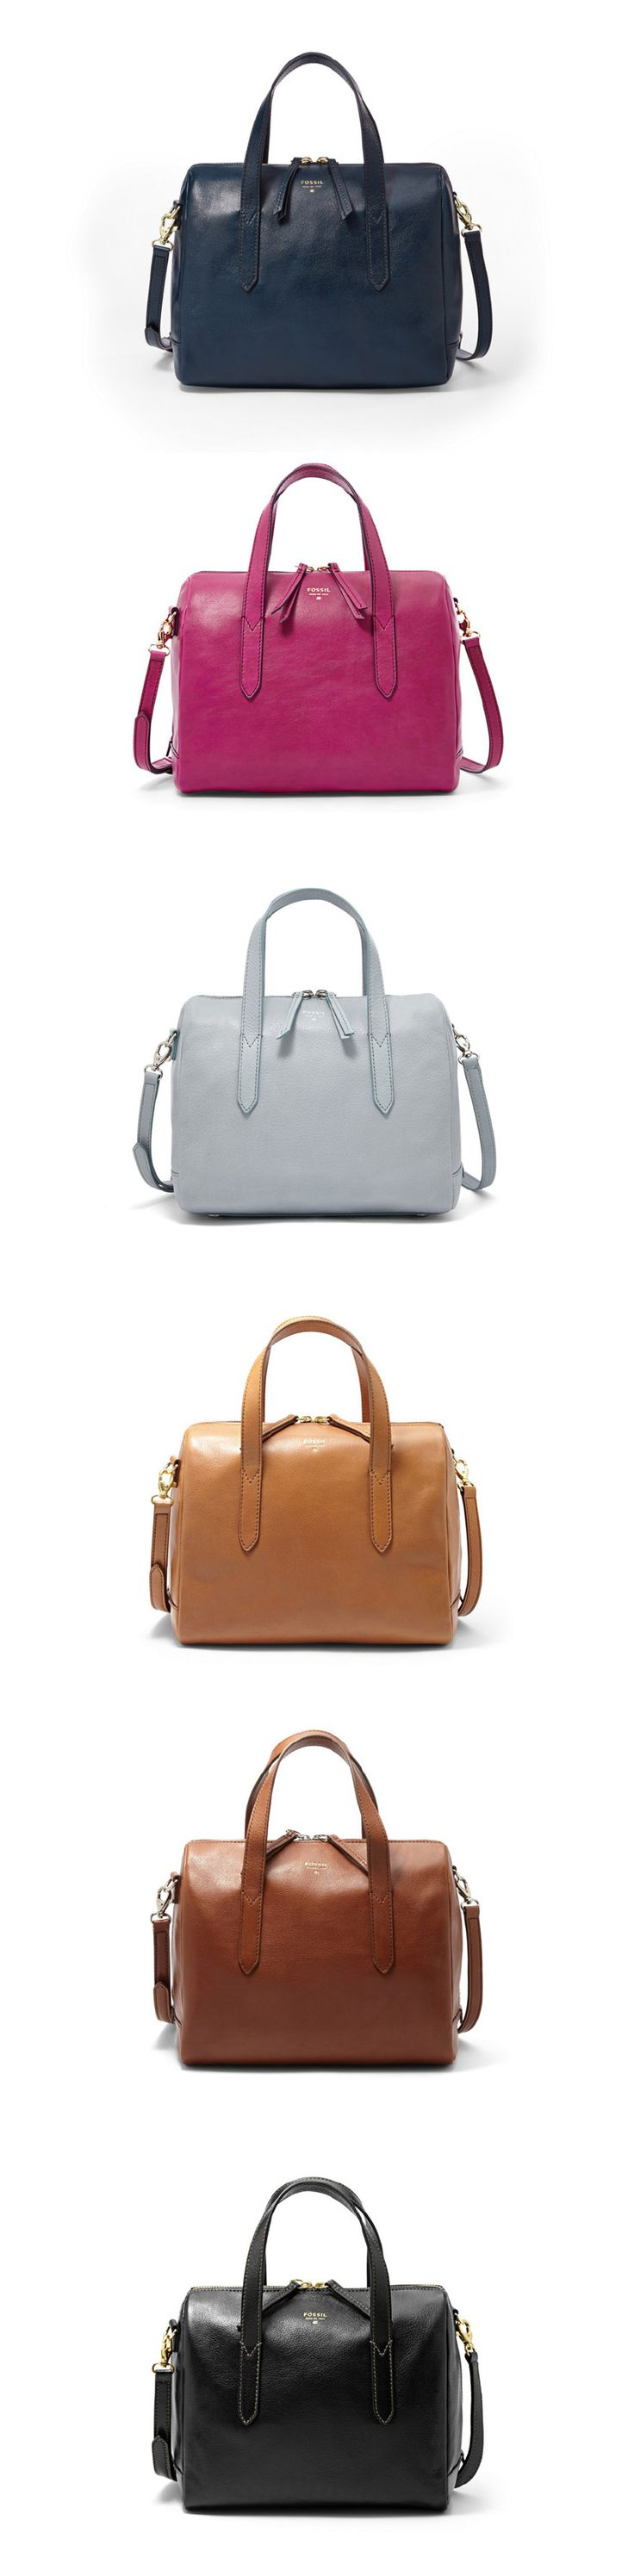 #Fossil Sydney Satchel in a curious color palette.